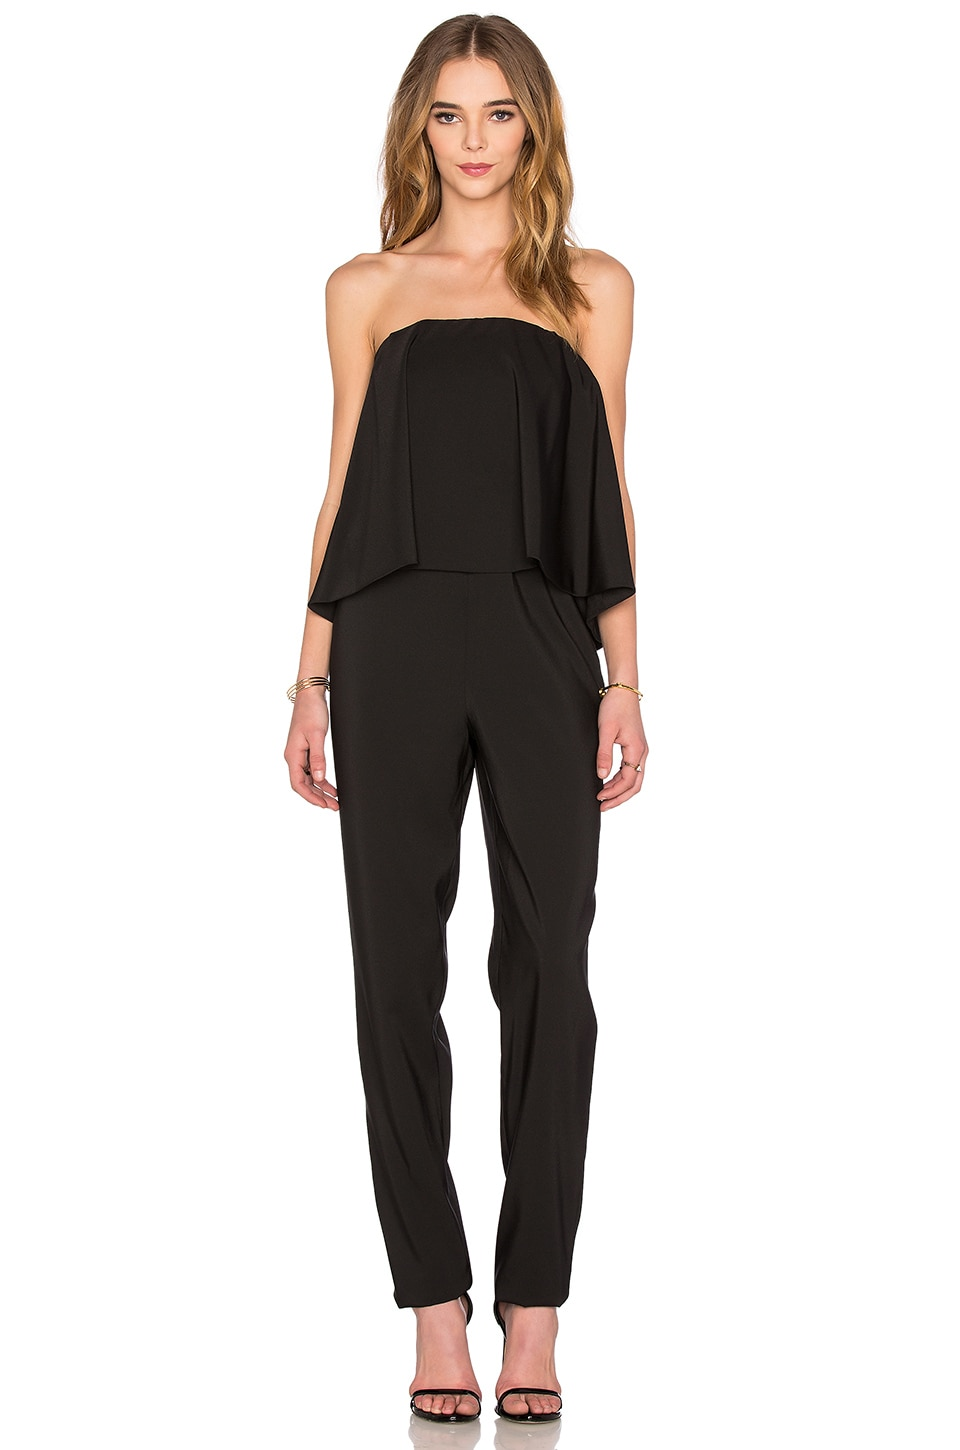 WAYF Strapless Jumpsuit in Black